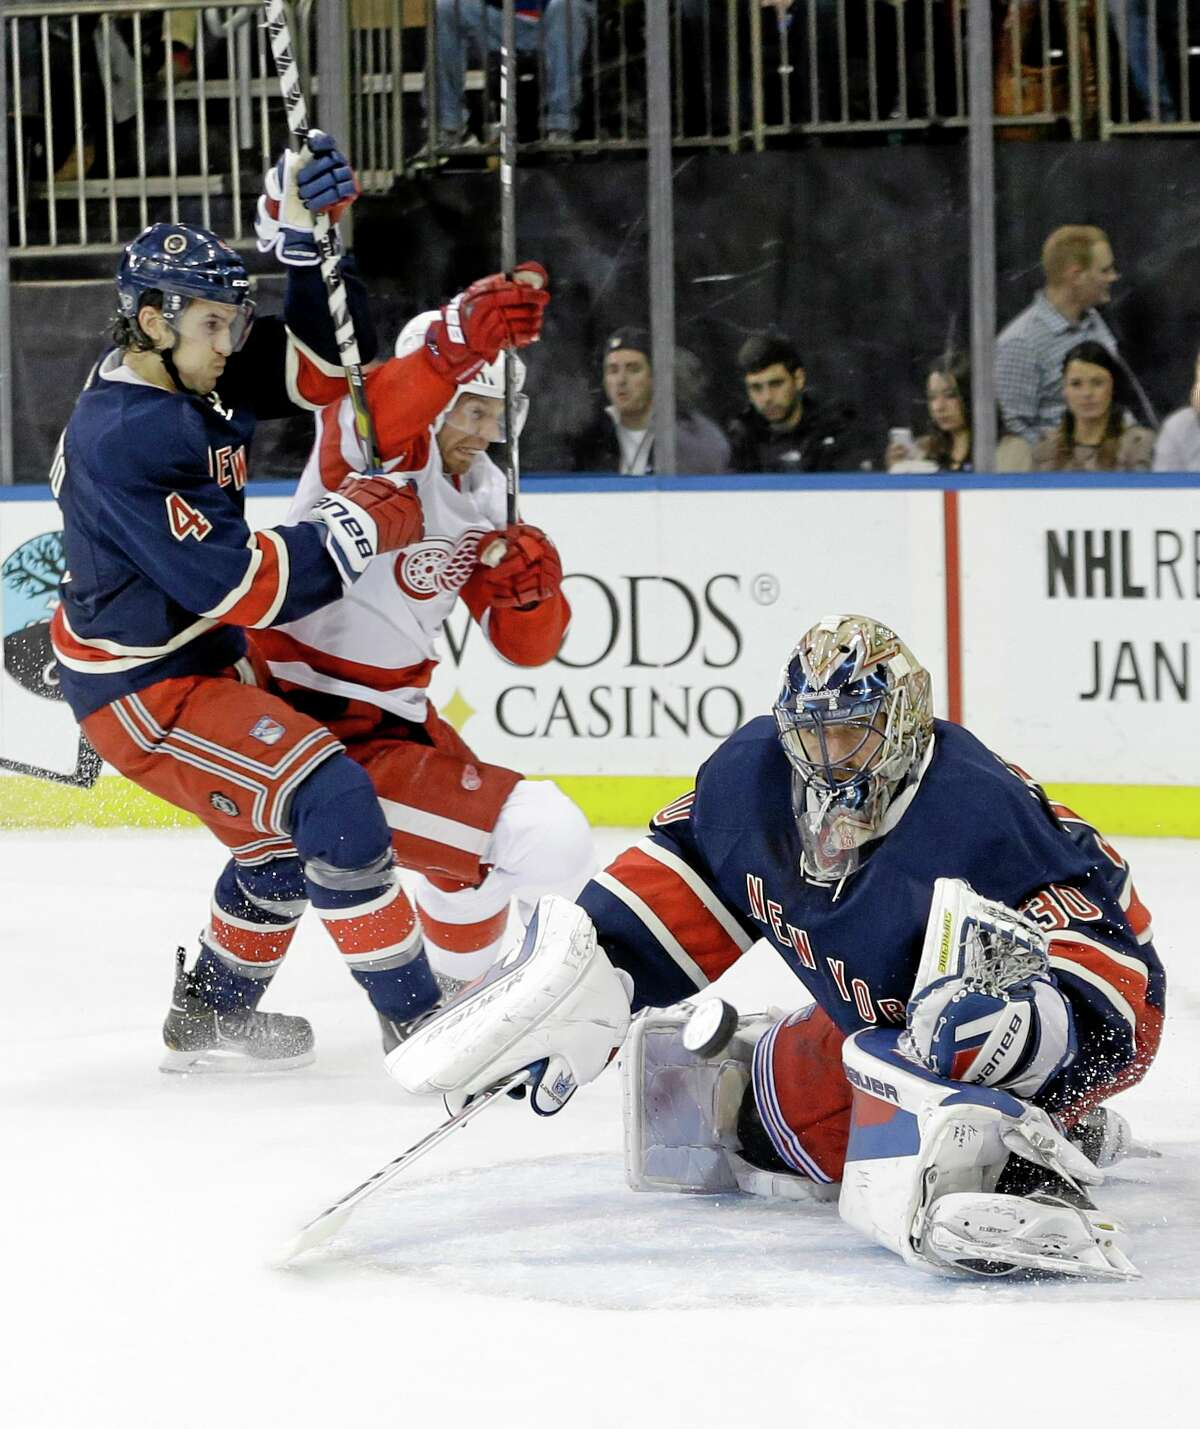 Rangers goalie Henrik Lundqvist (30) makes a save as the Red Wings' Mikael Samuelsson and Michael Del Zotto (4) fight for position during a Jan. 16 game in New York.